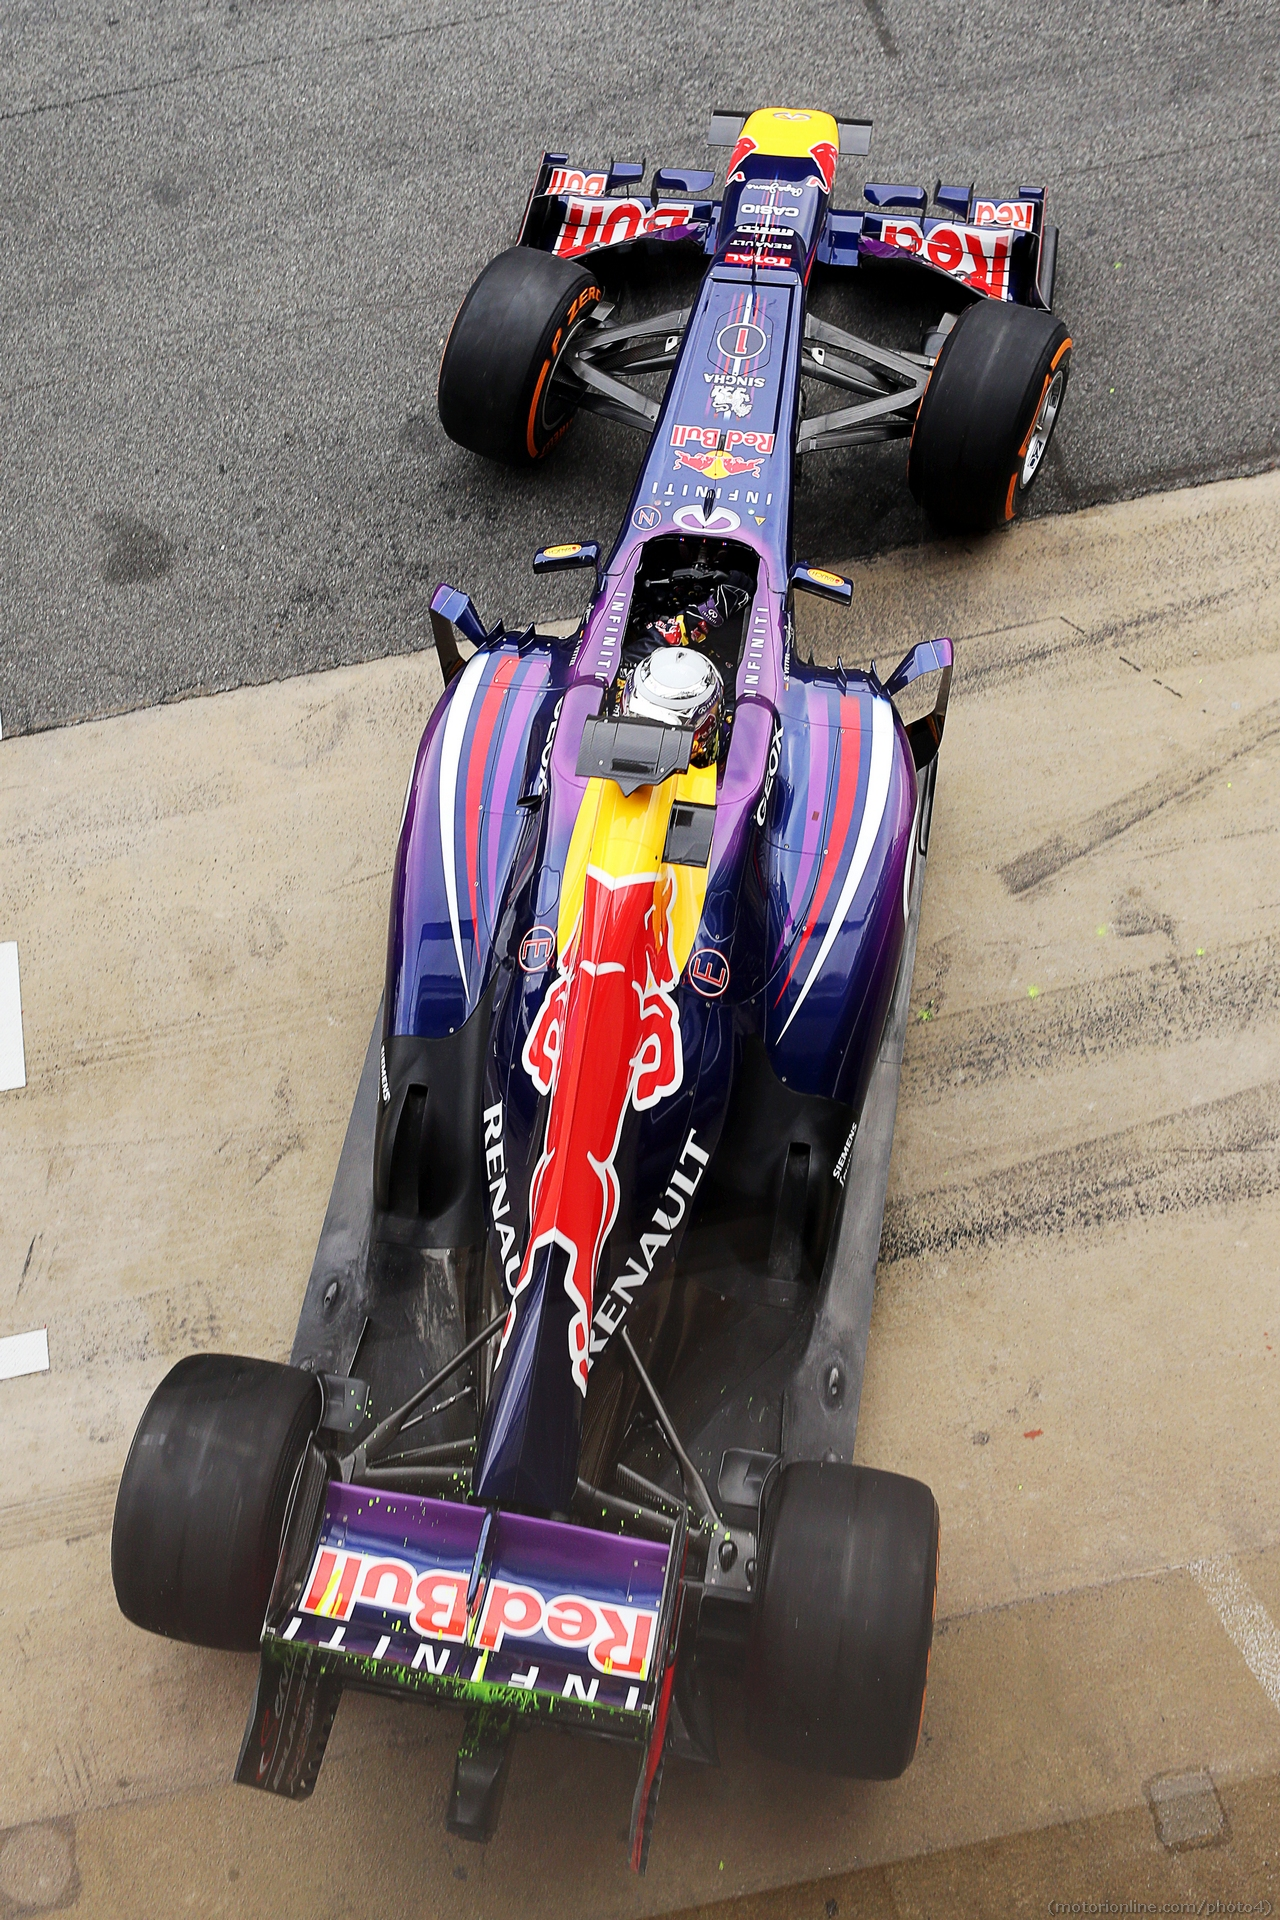 Sebastian Vettel (GER) Red Bull Racing RB9 running flow-vis paint on the rear wing and rear diffuser. 01.03.2013.